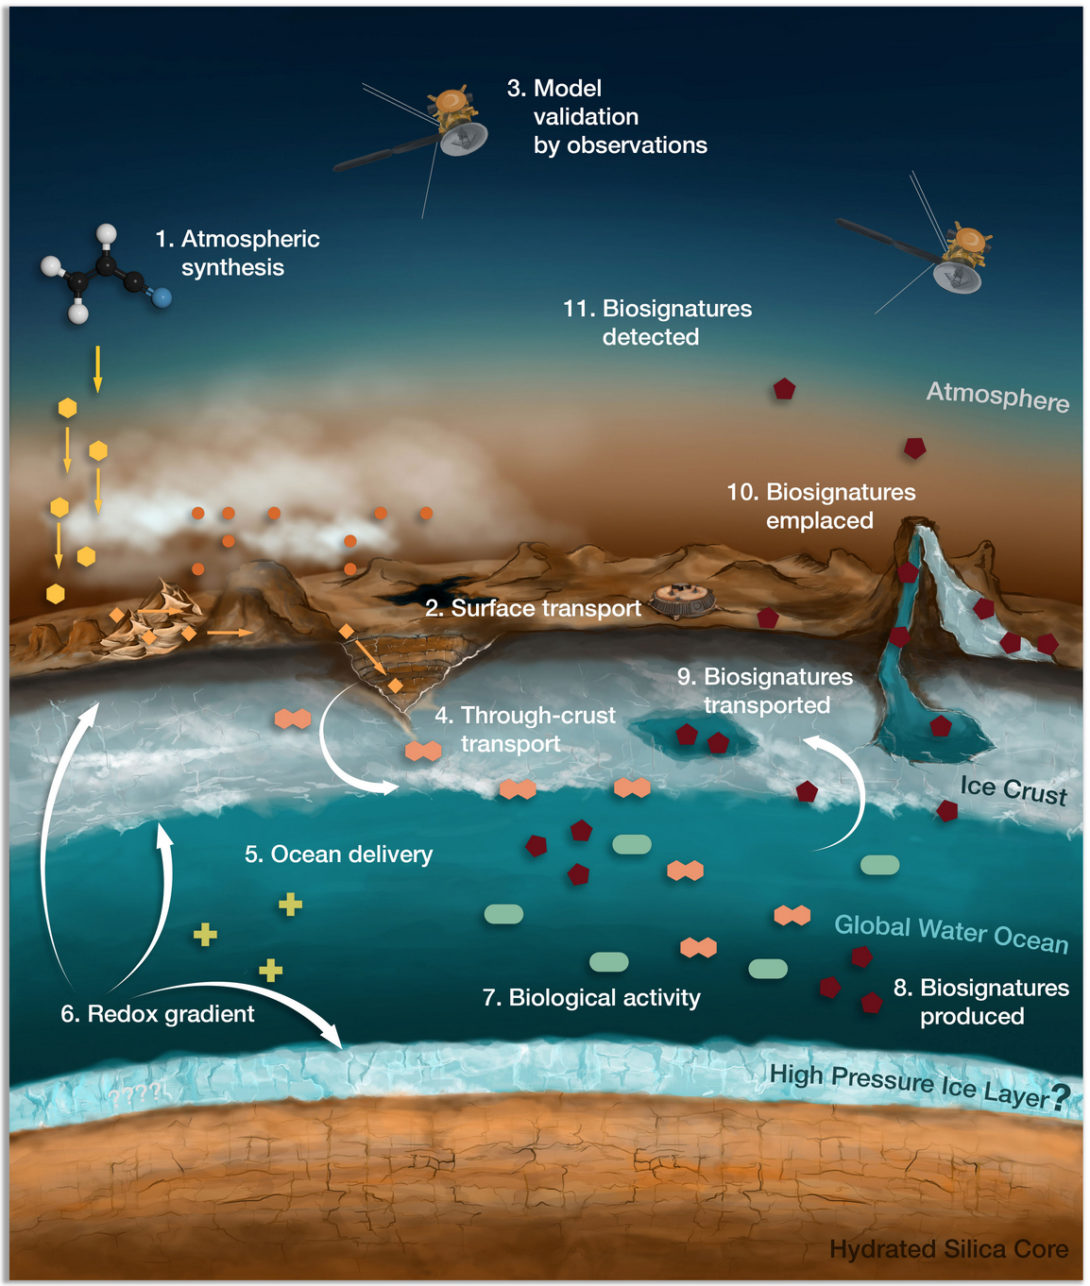 Cartoon digram of Titan's atmosphere, surface, and subsurface showing potential biosignatures